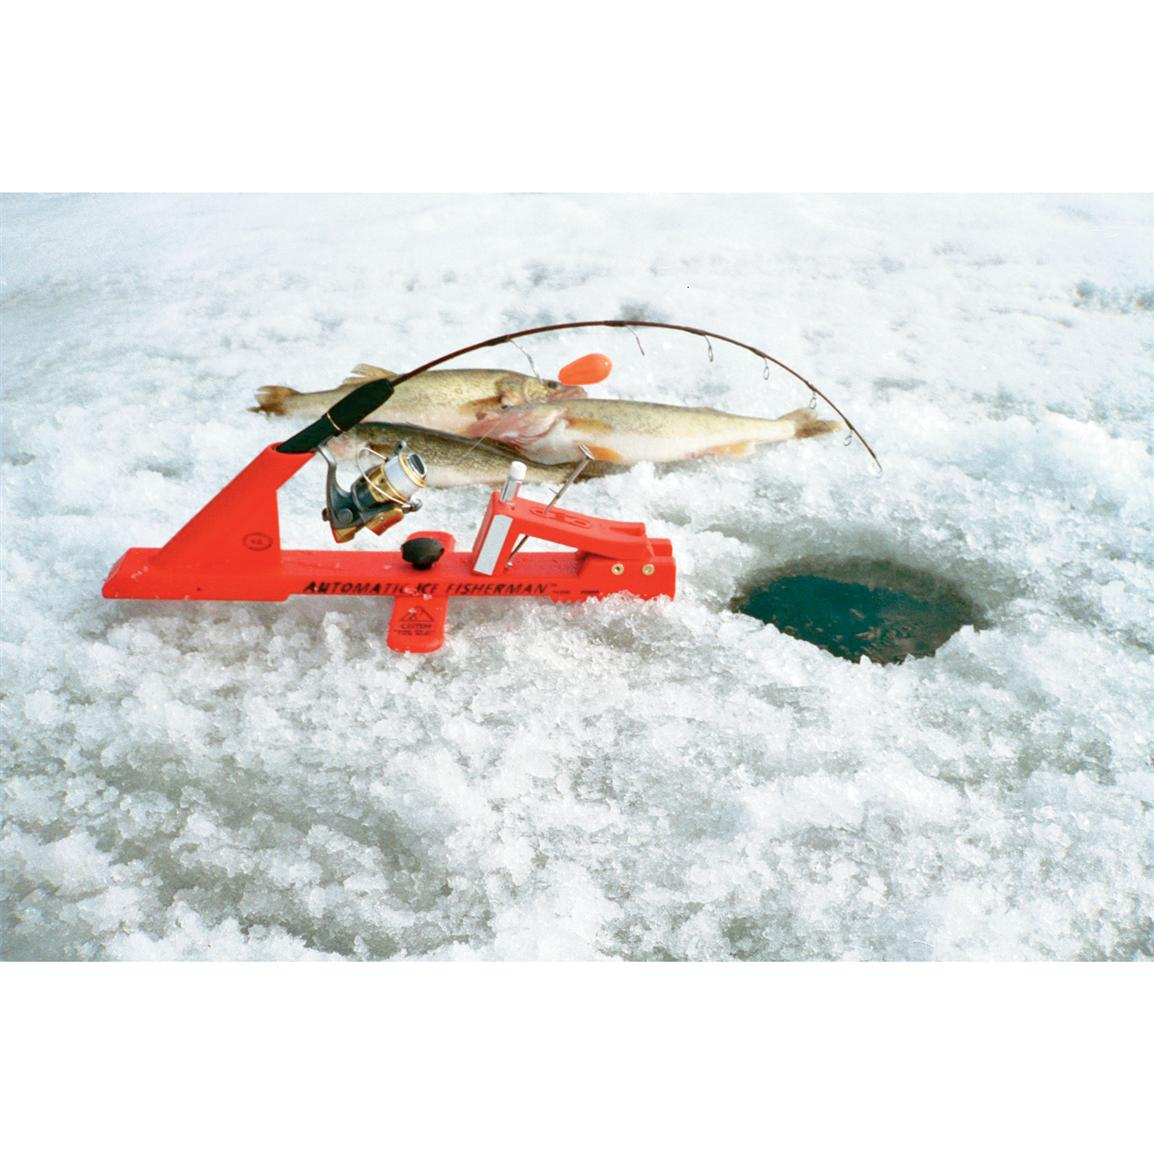 Automatic ice fisherman 25841 ice fishing tip ups at for Tip up fishing